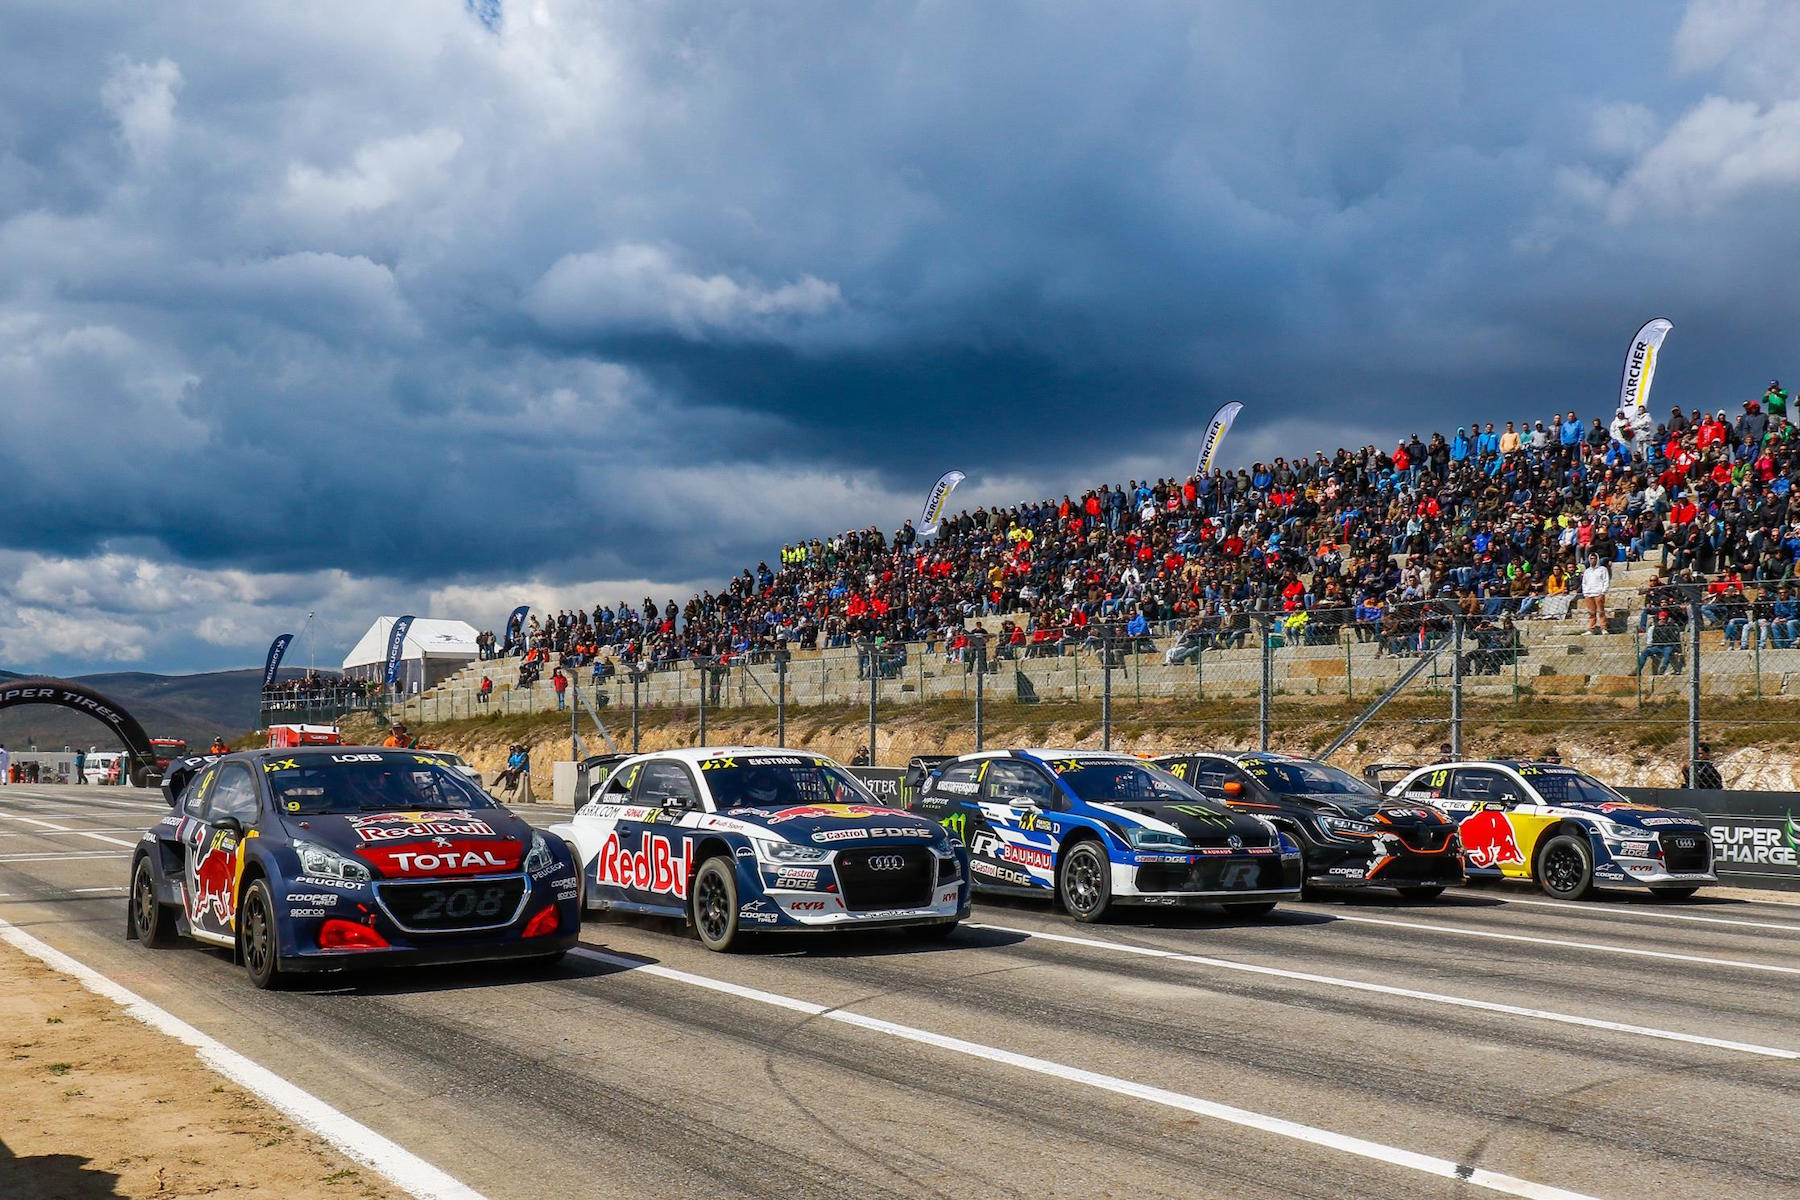 2018 Speedmachine Festival World Rallycross Championship